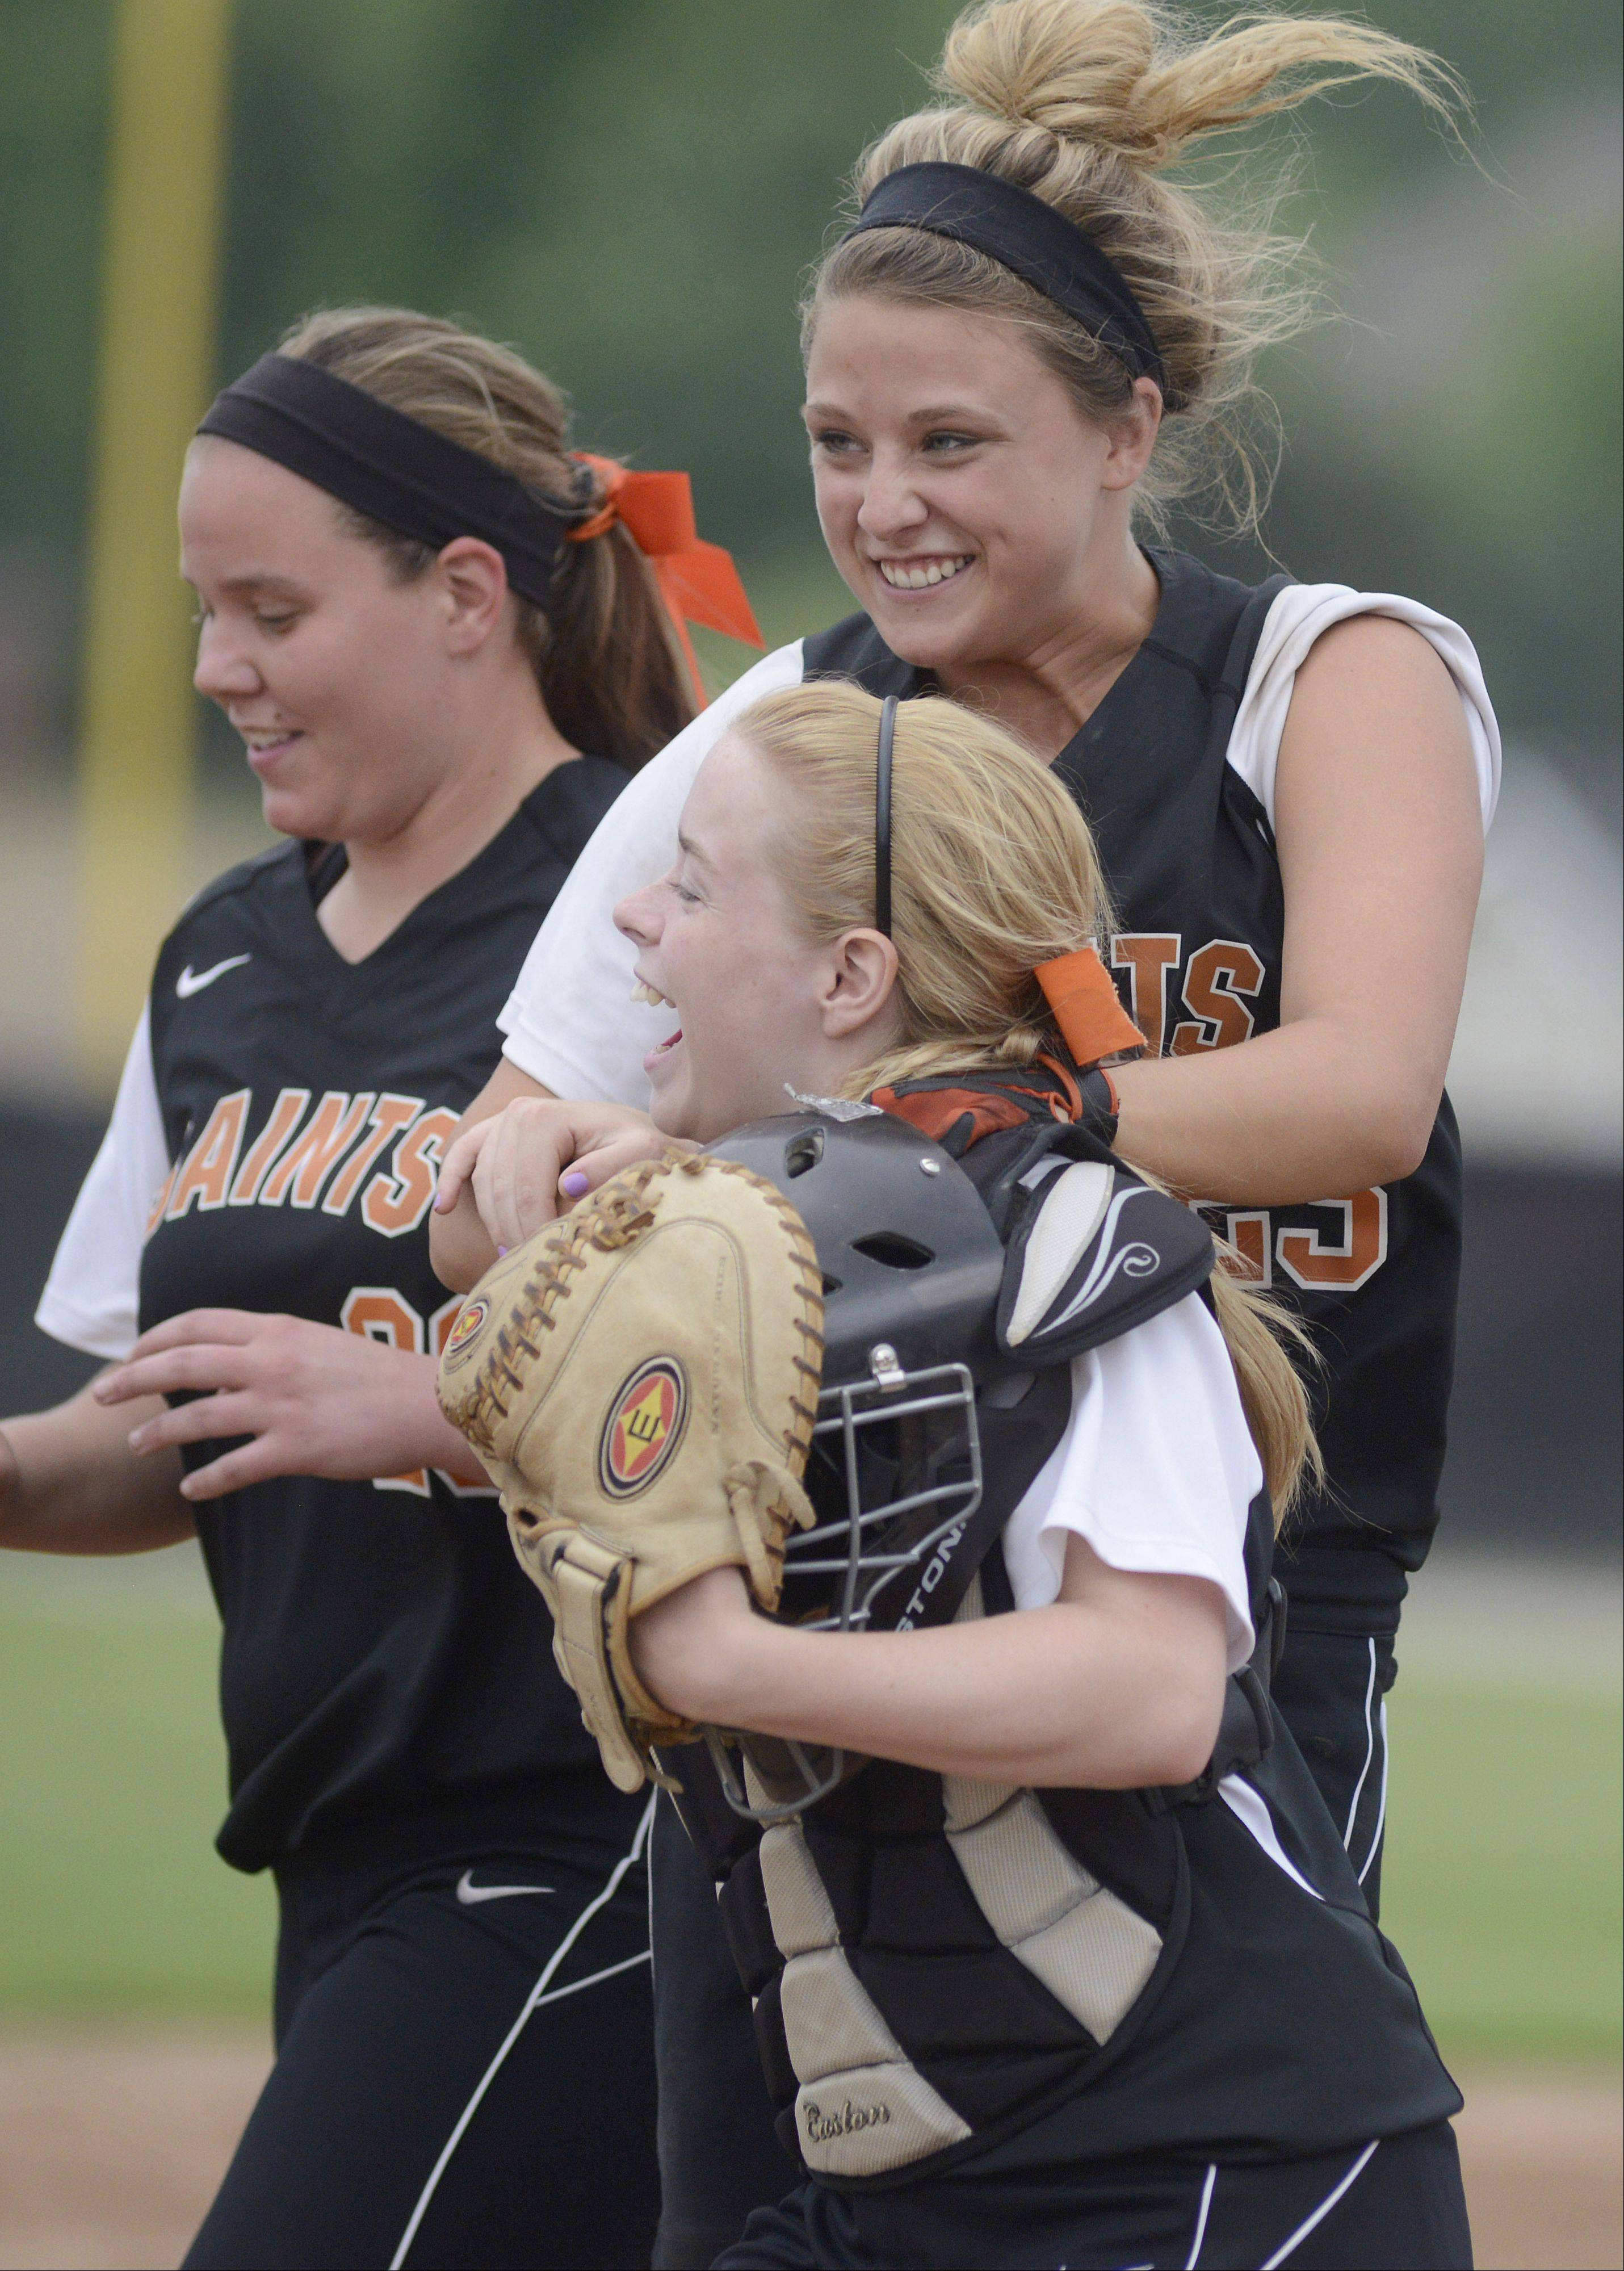 St. Charles East's Mackenzie Meadows jumps with her arms wrapped around teammate and catcher Shelby Holtz after winning the Class 4A sectional vs. Bartlett on Tuesday.